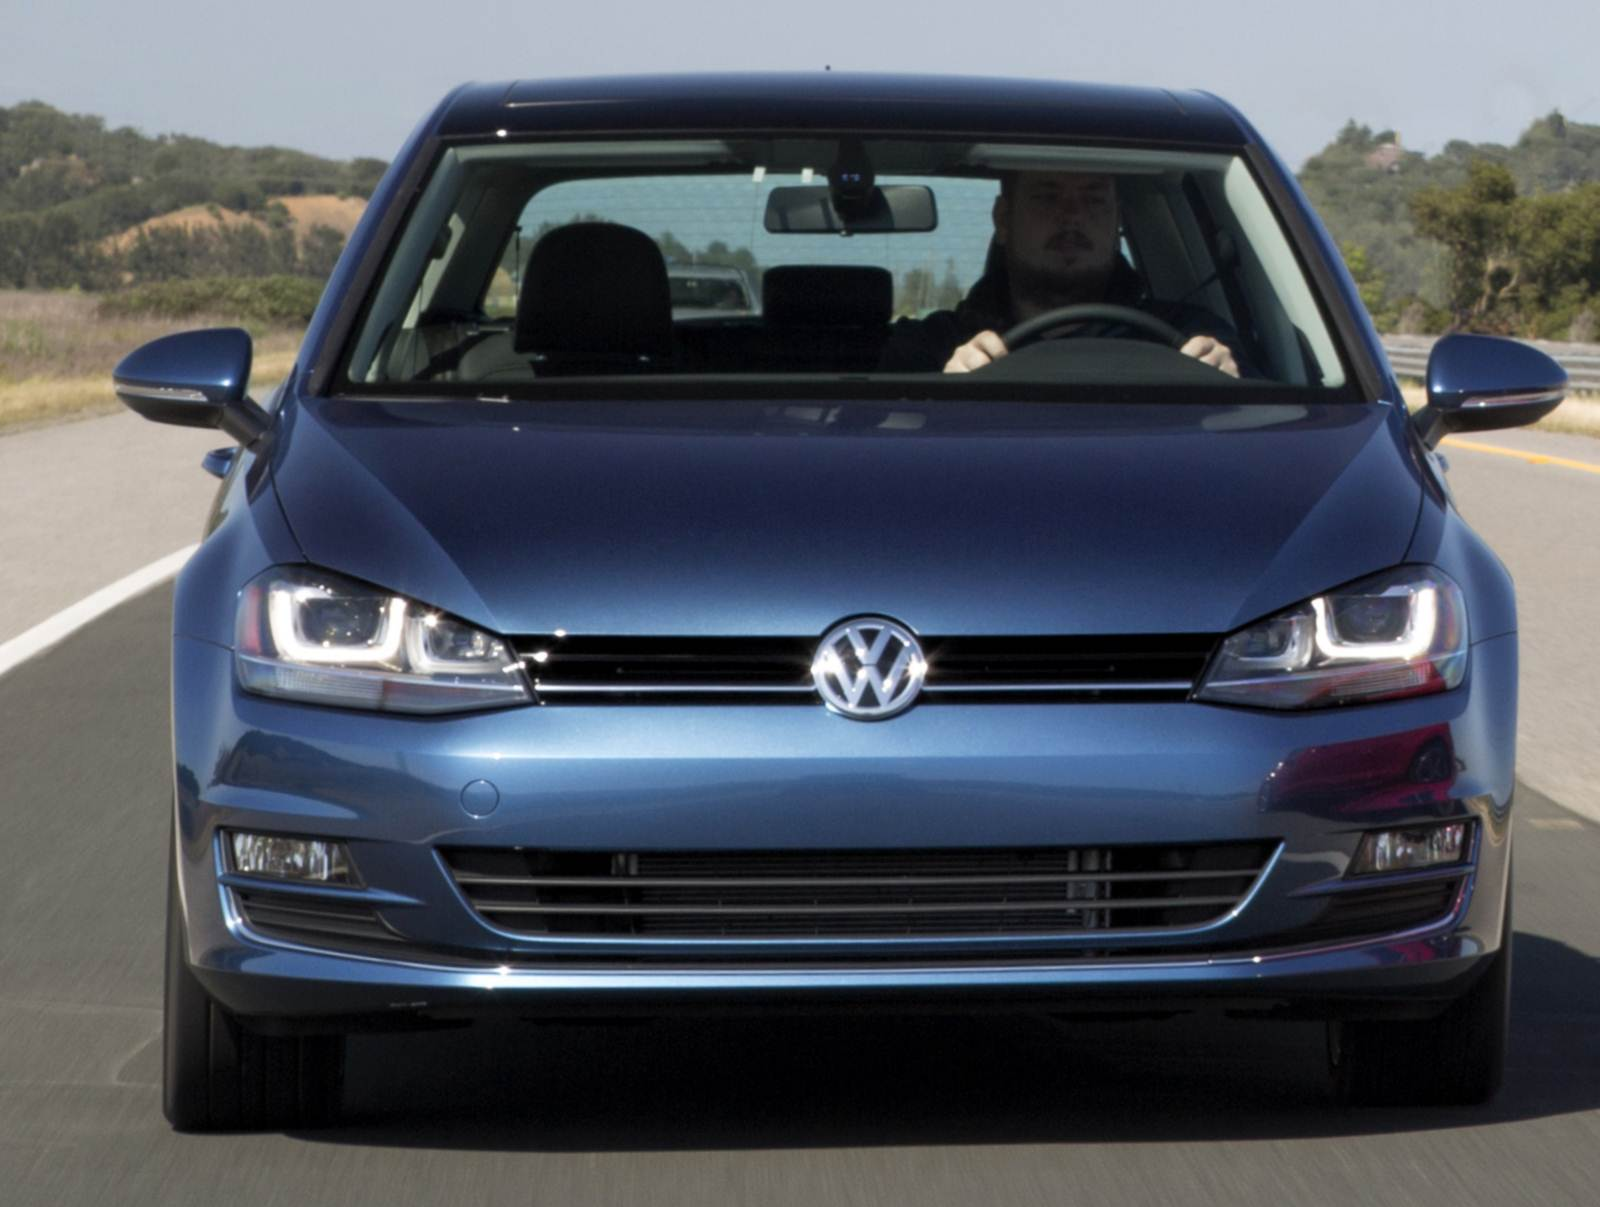 VW Golf 2015 - The Very Best